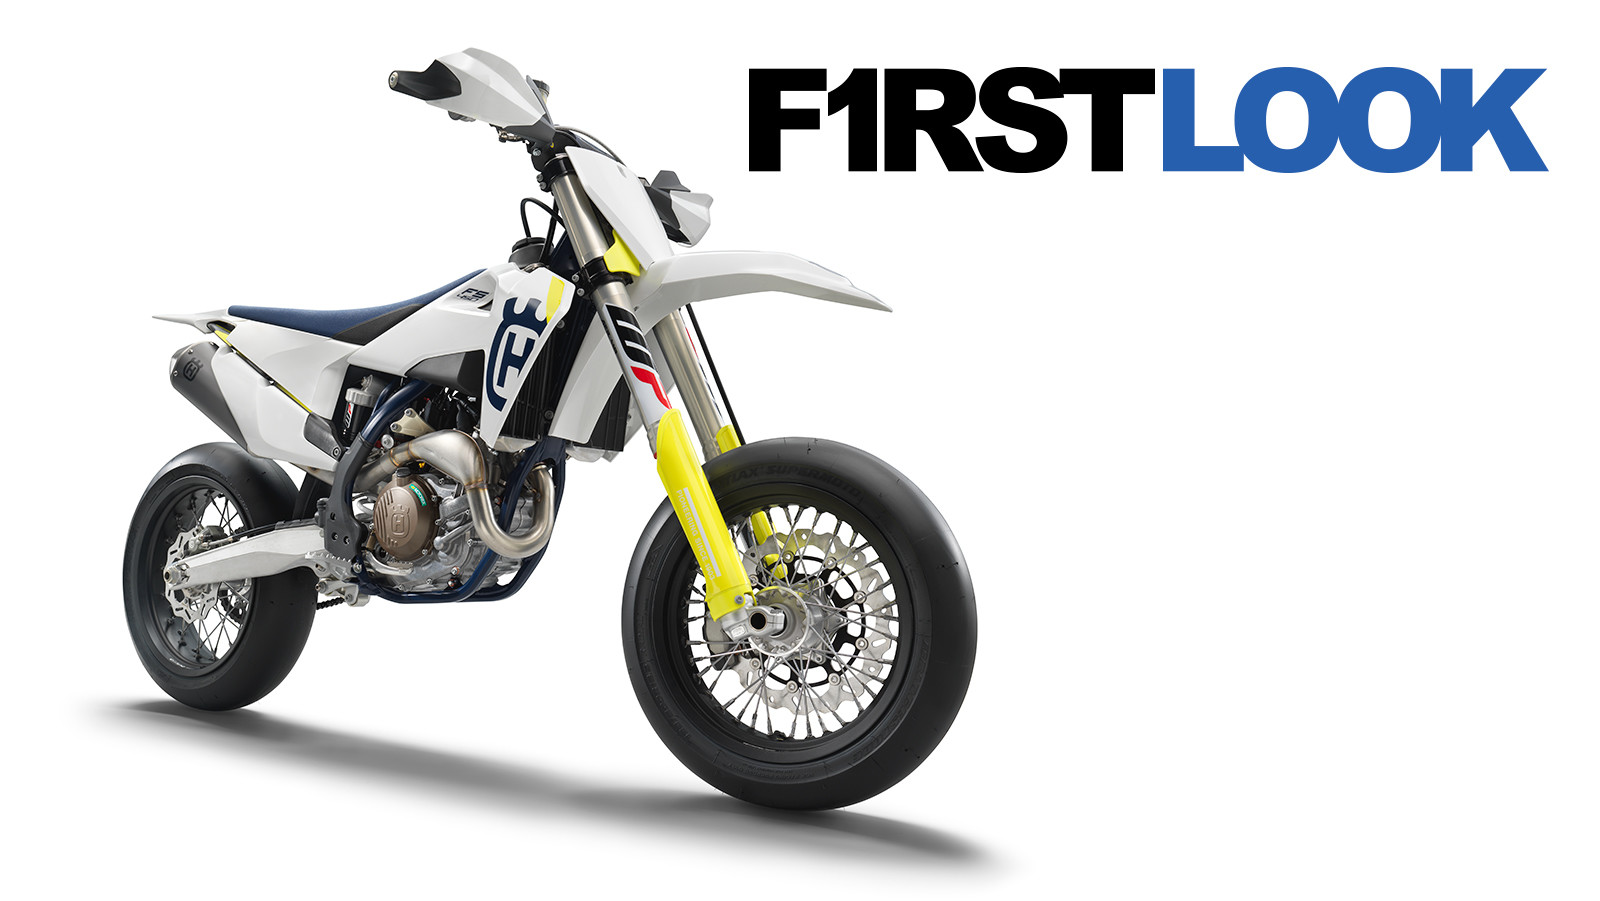 First Look: 2019 Husqvarna FS 450